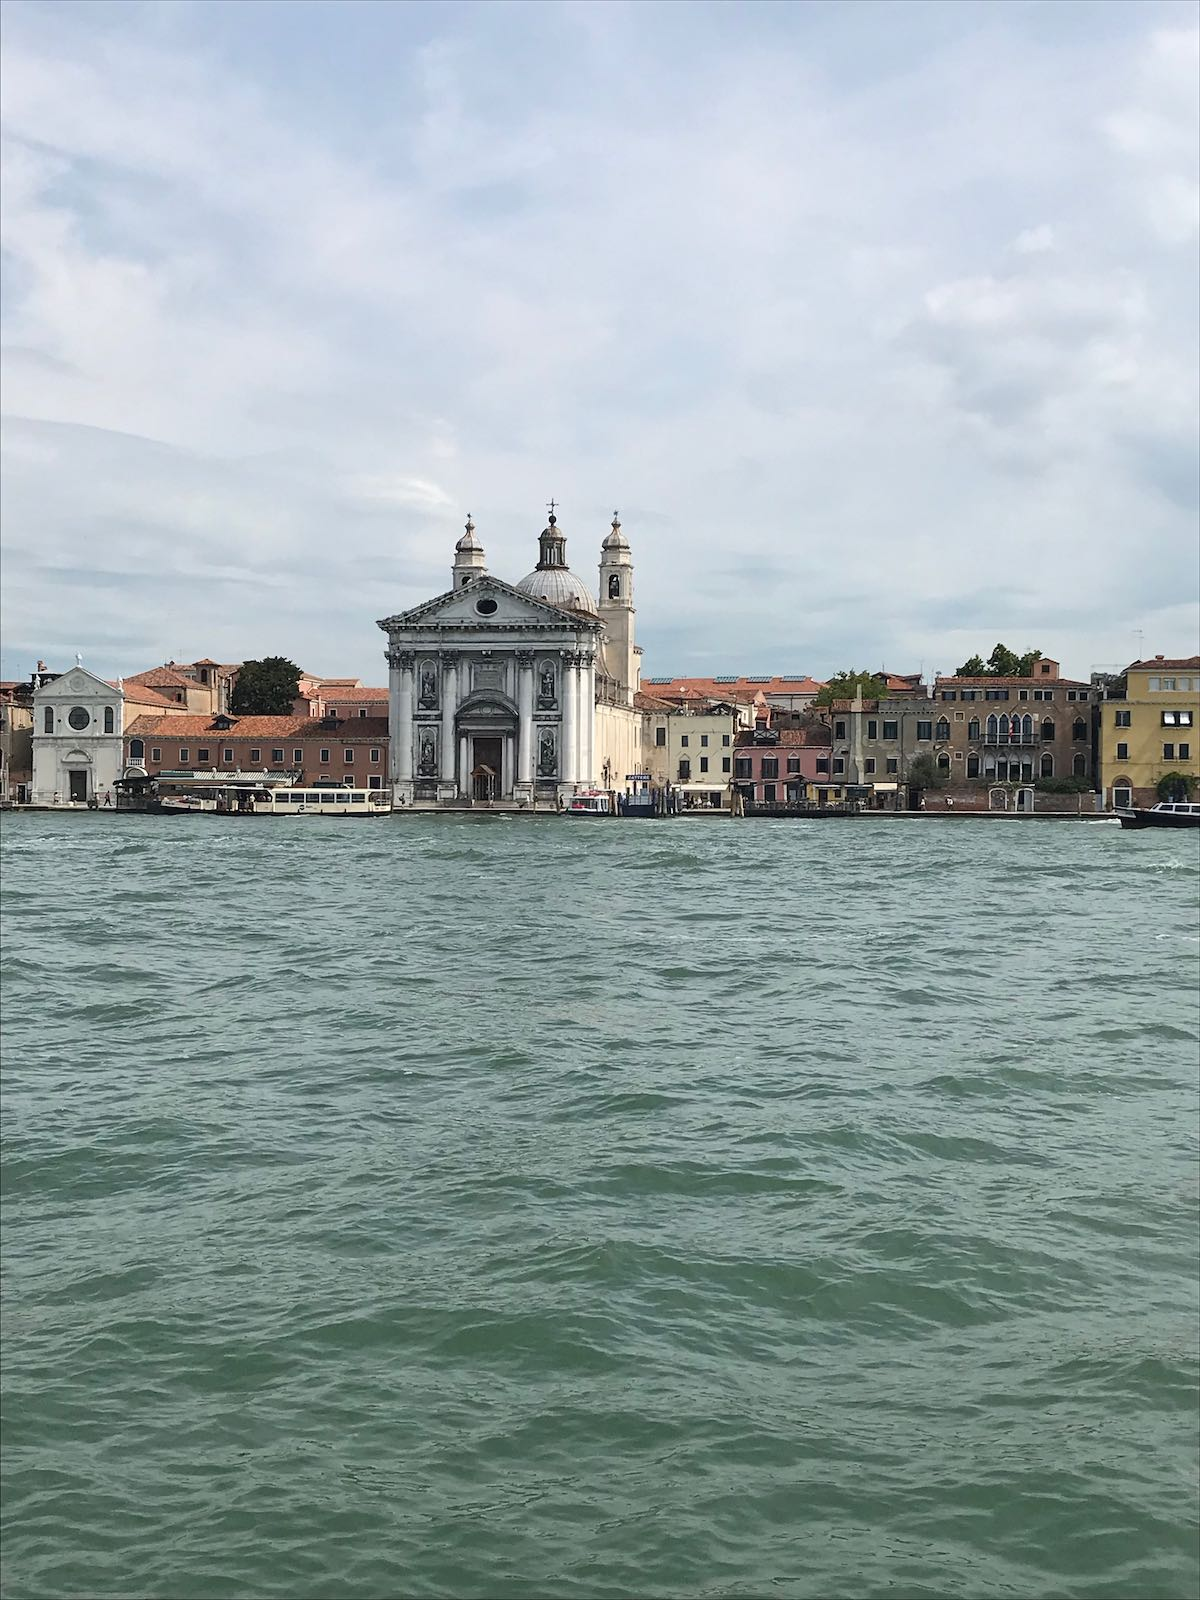 View of Venice from the water